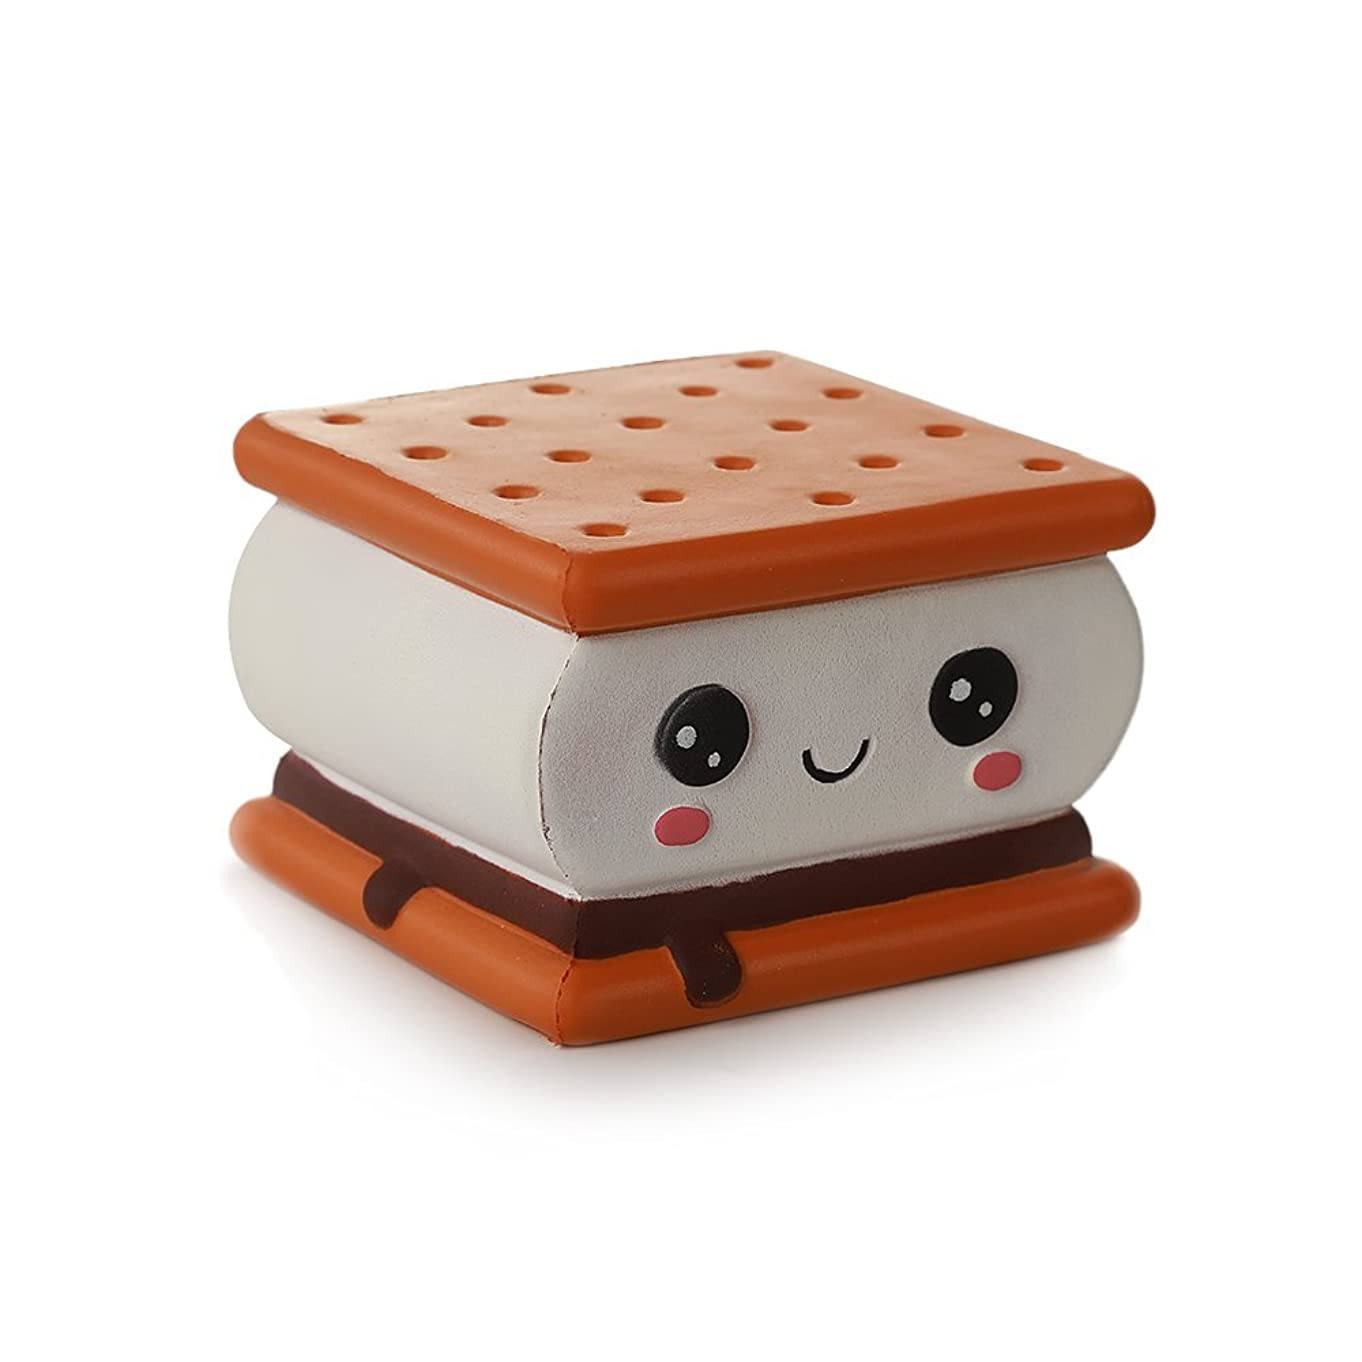 Anboor Squishies Cake Chocolate Sandwich Biscuit Cookies Pizza Kawaii Soft Slow Rising Scented Food Bread Squishies Stress Relief Kid Toys Gift Collection